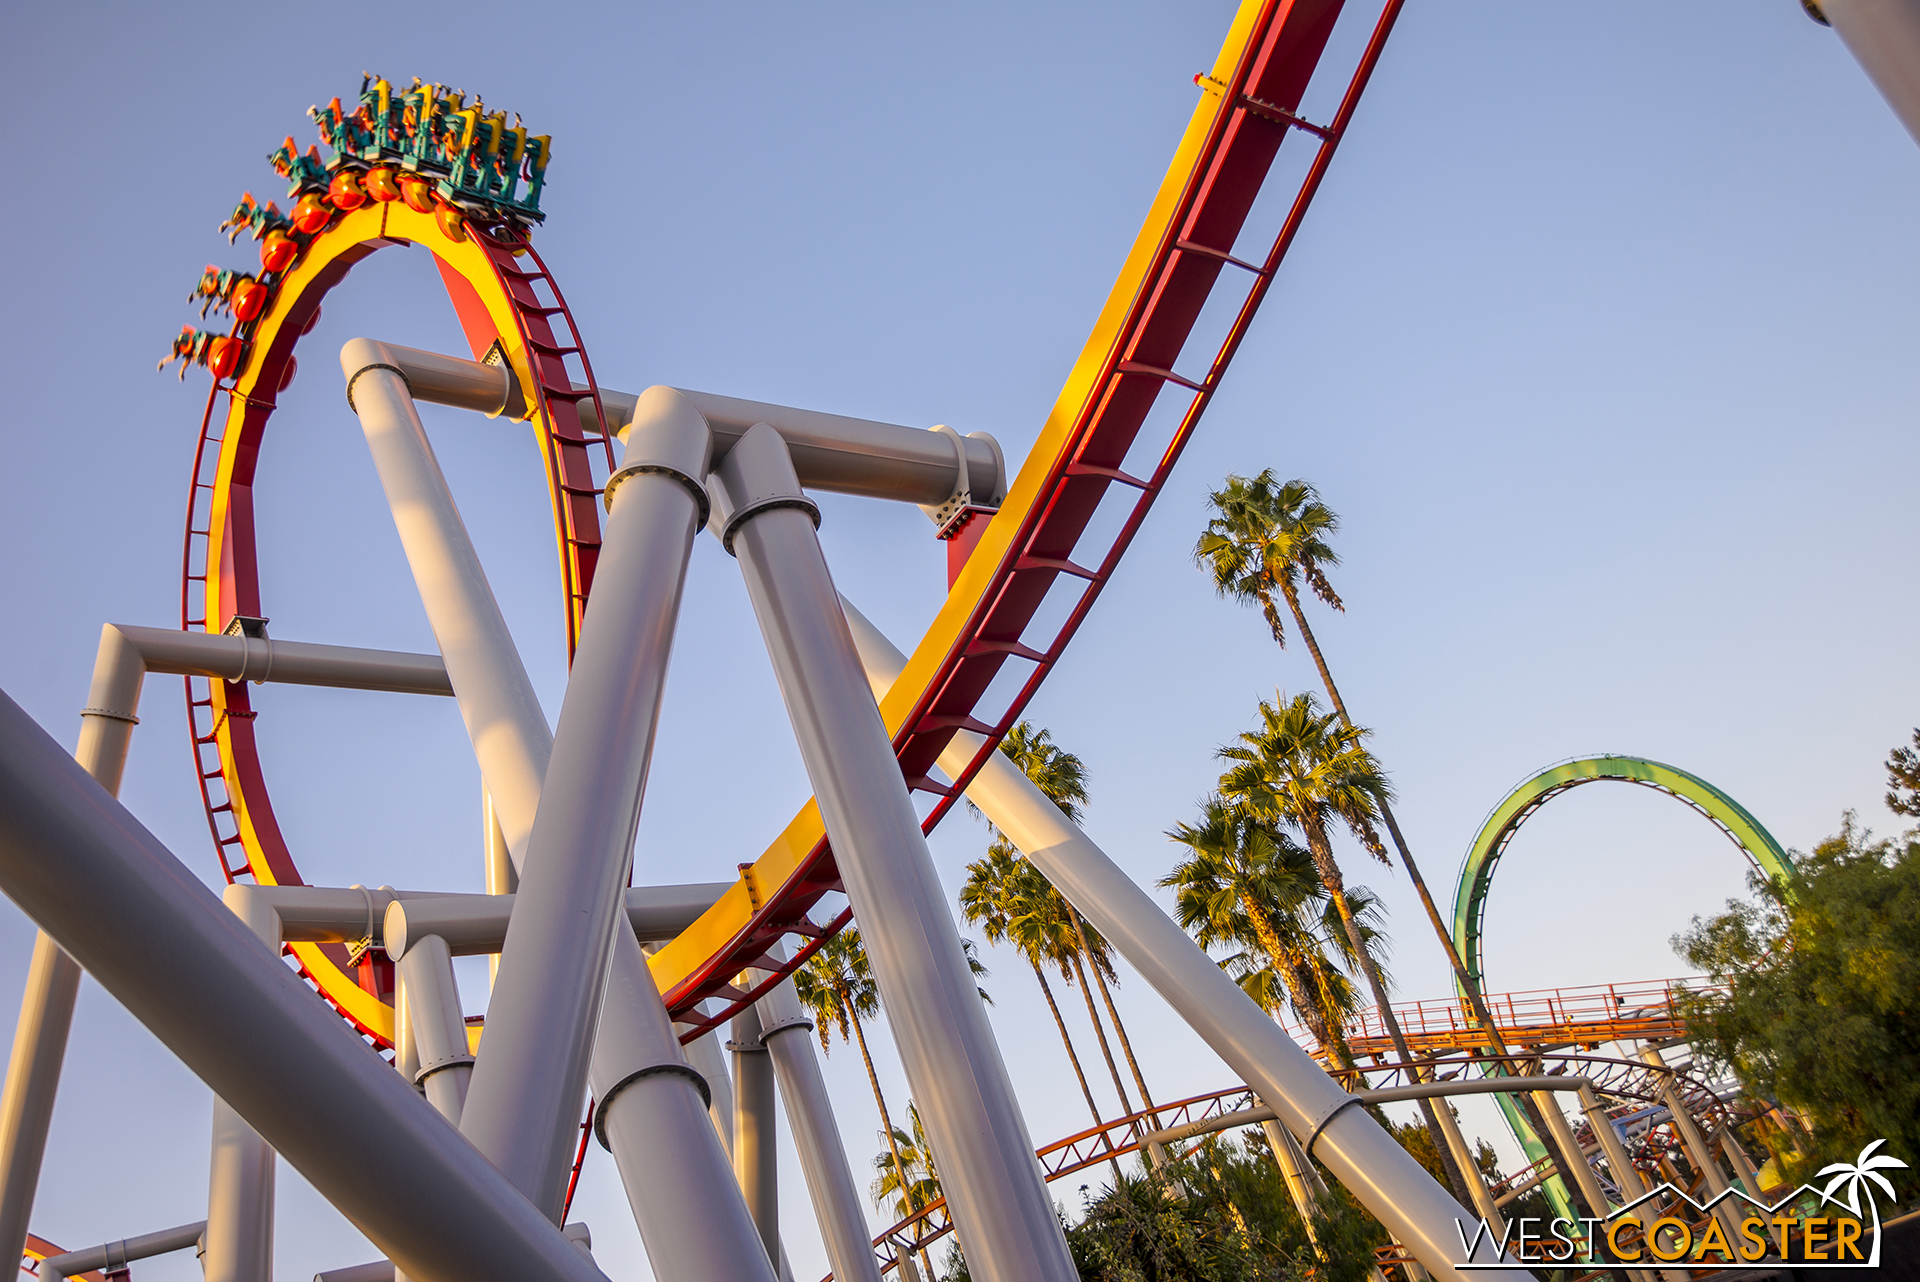 The loops of Silver Bullet and Montezooma's Revenge.